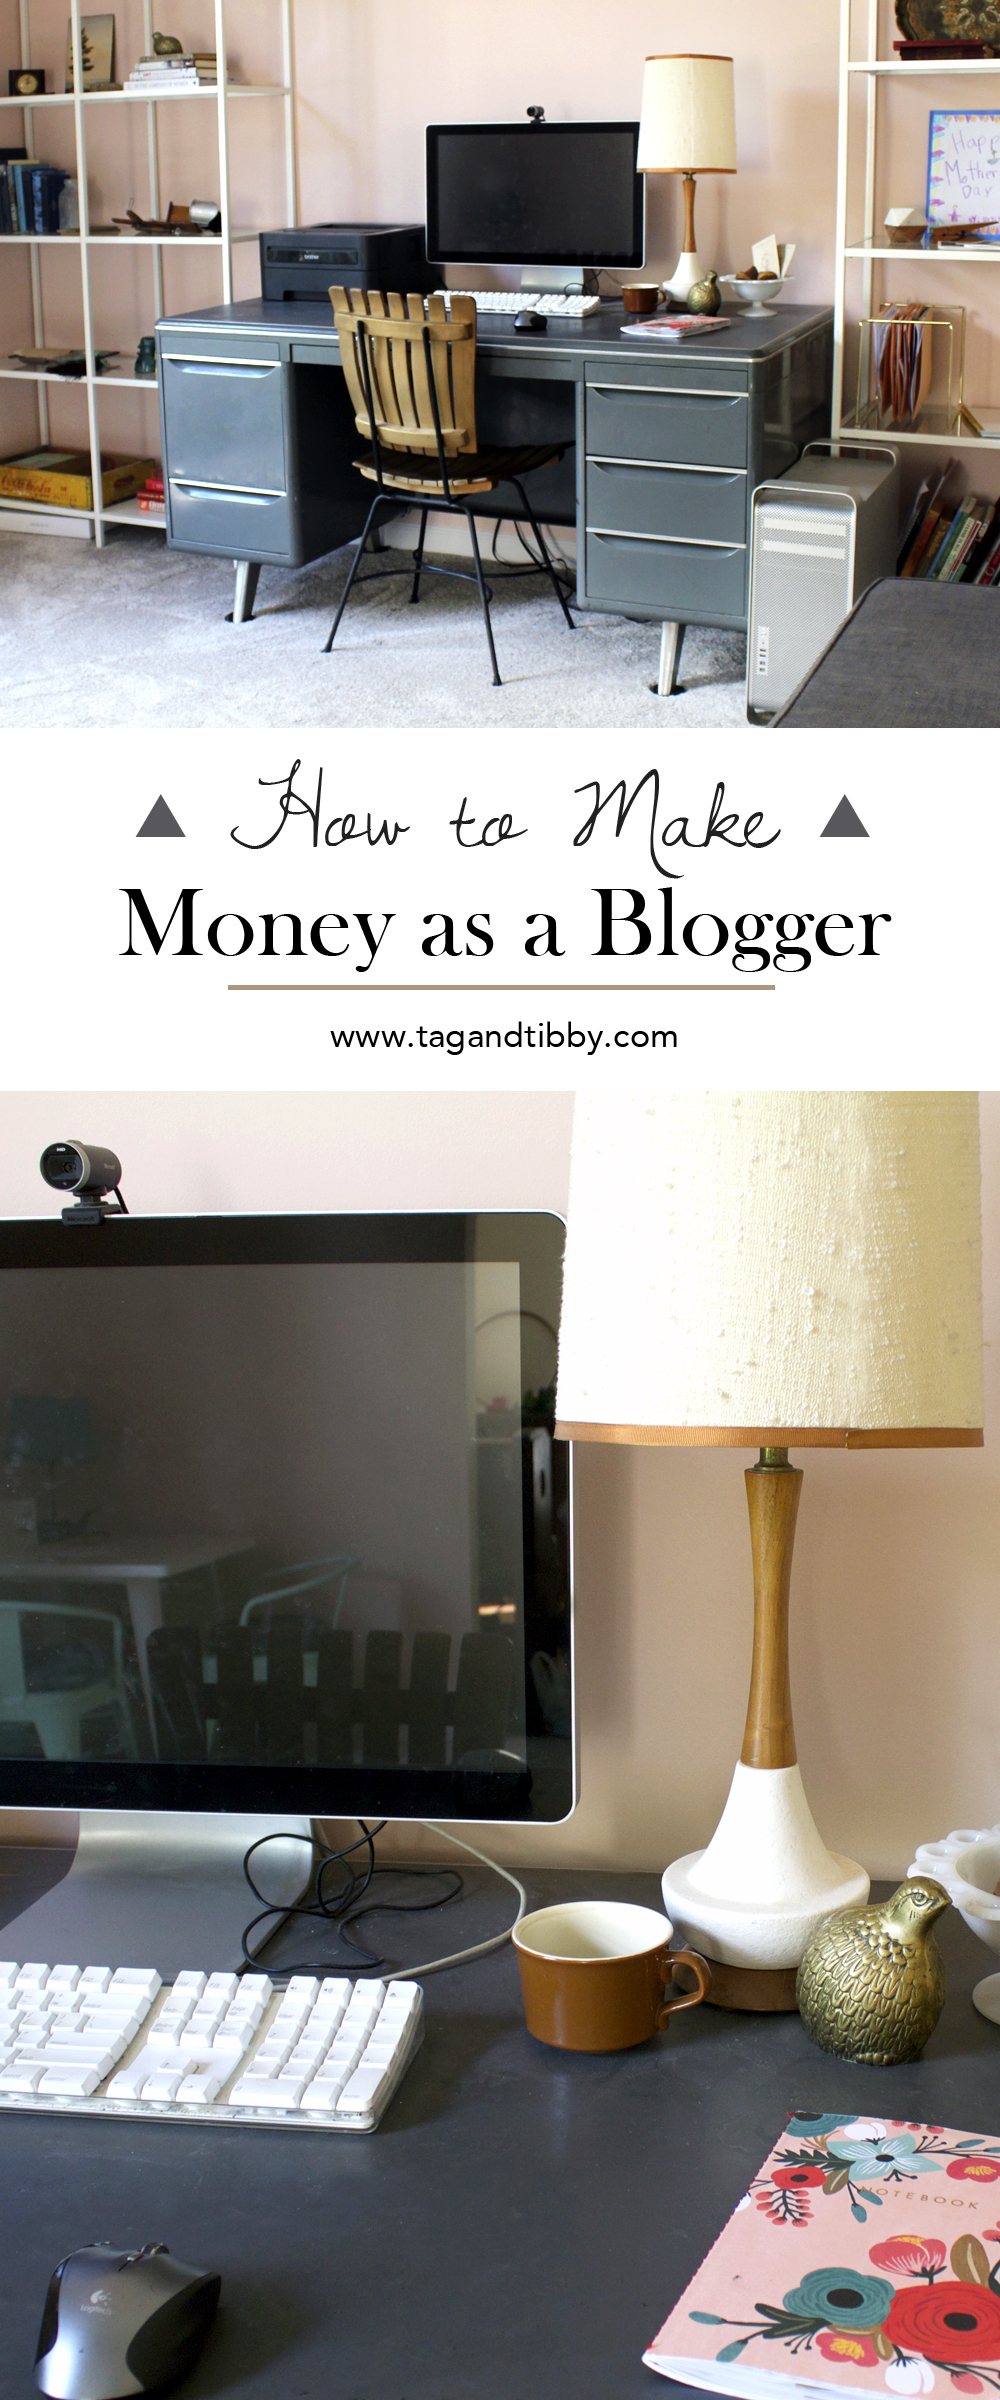 How to make money as a blogger | Tag&Tibby